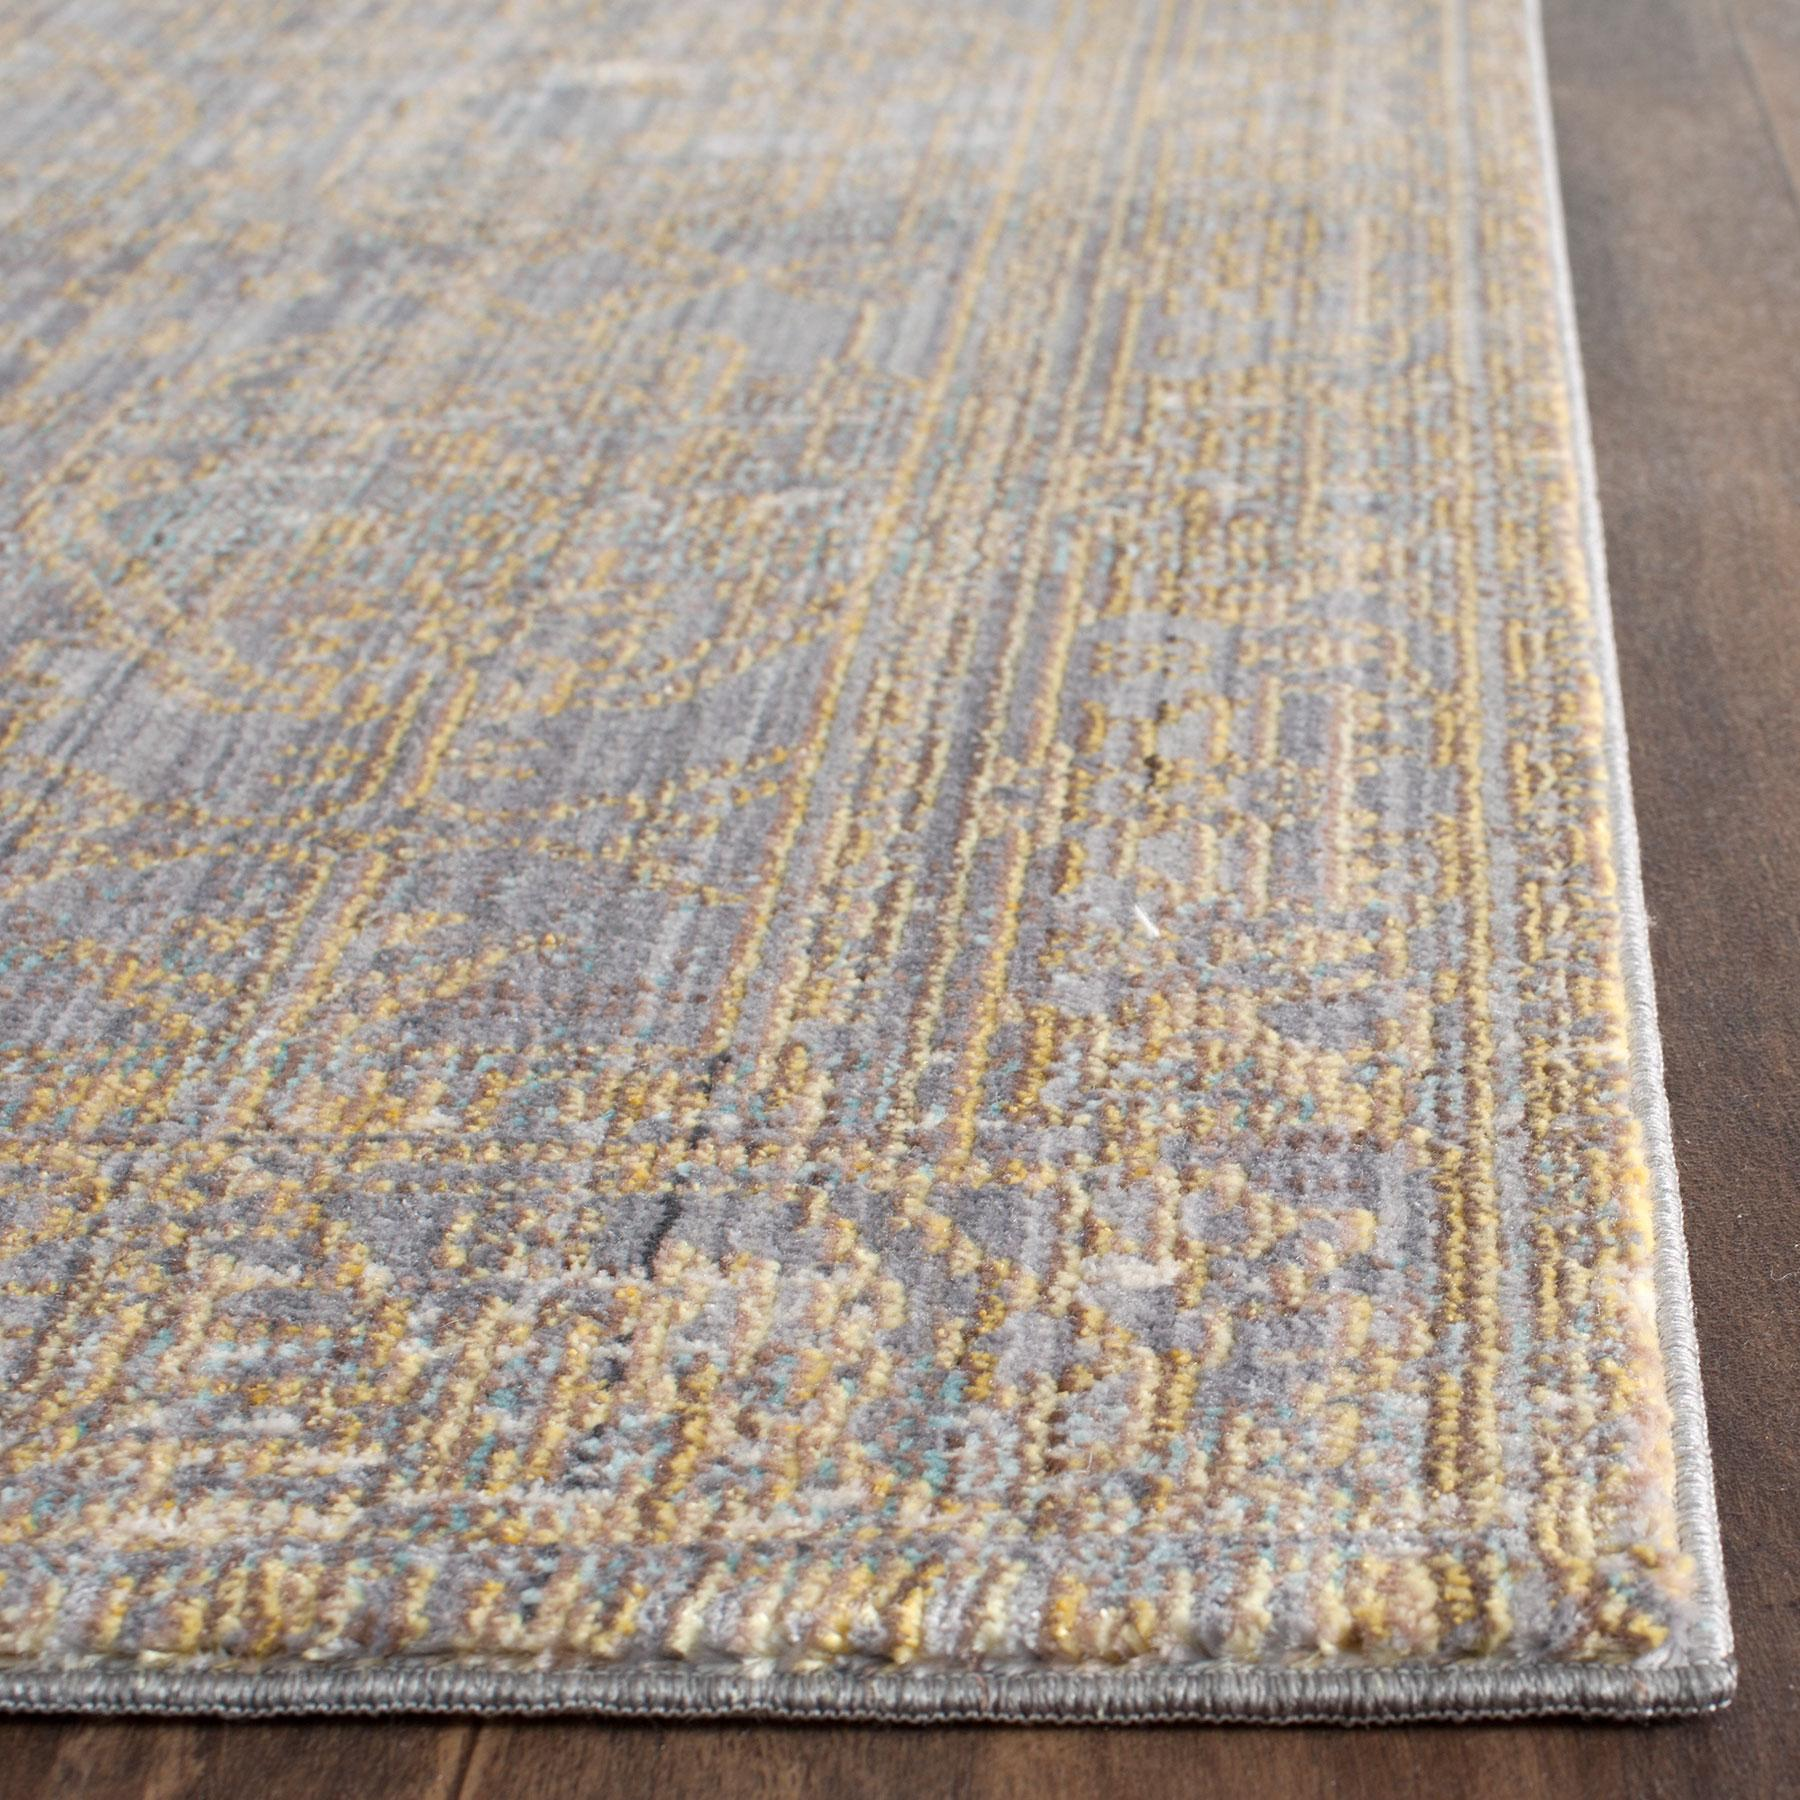 Gold Amp Grey Area Rug